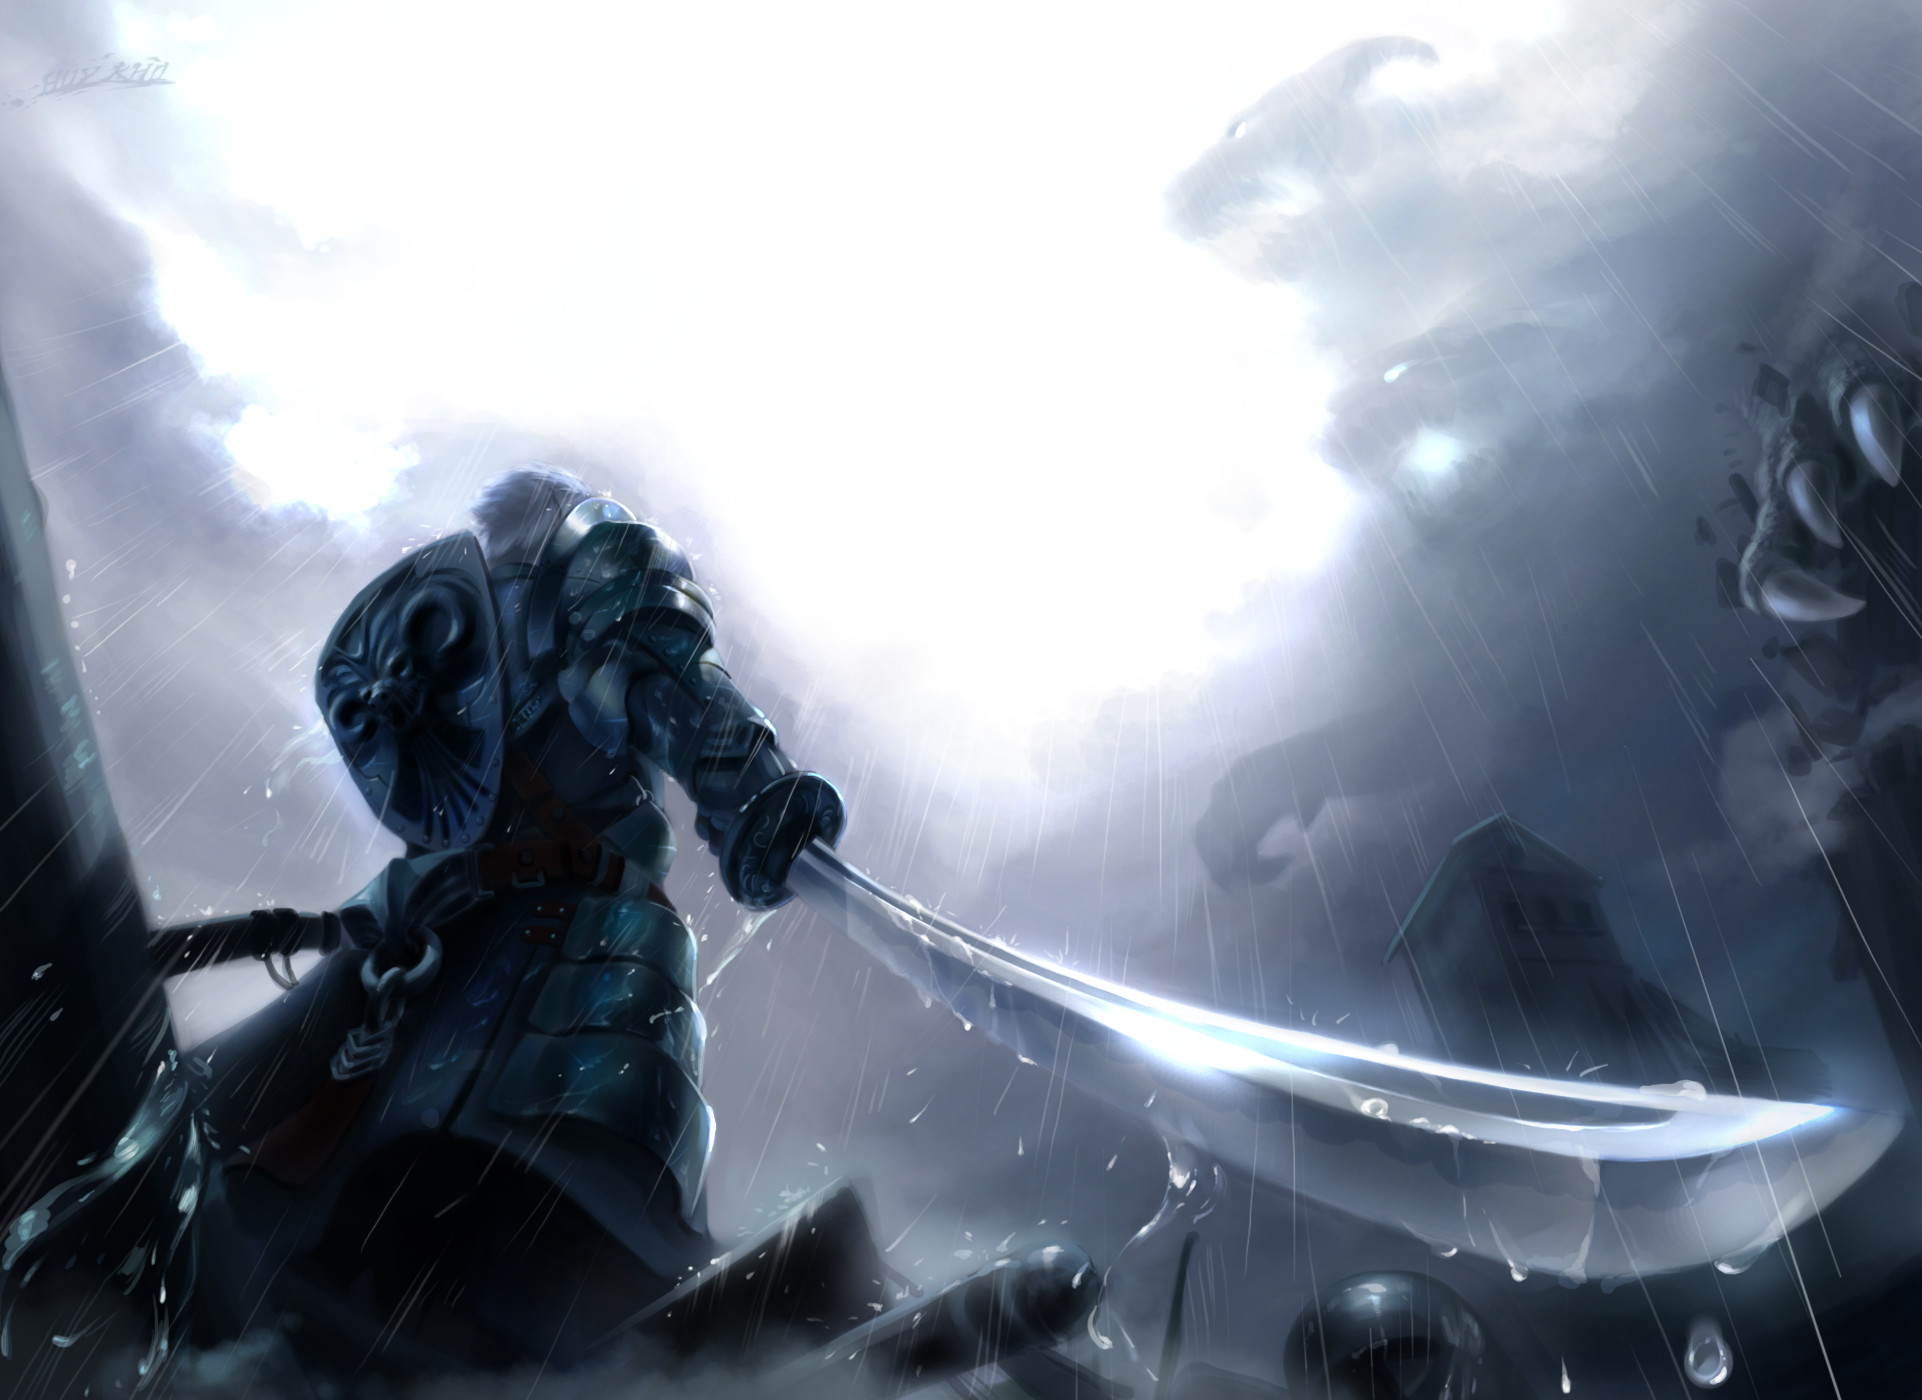 1920x1080 Download Now Full Hd Wallpaper Knight Sword Long Hair Feather